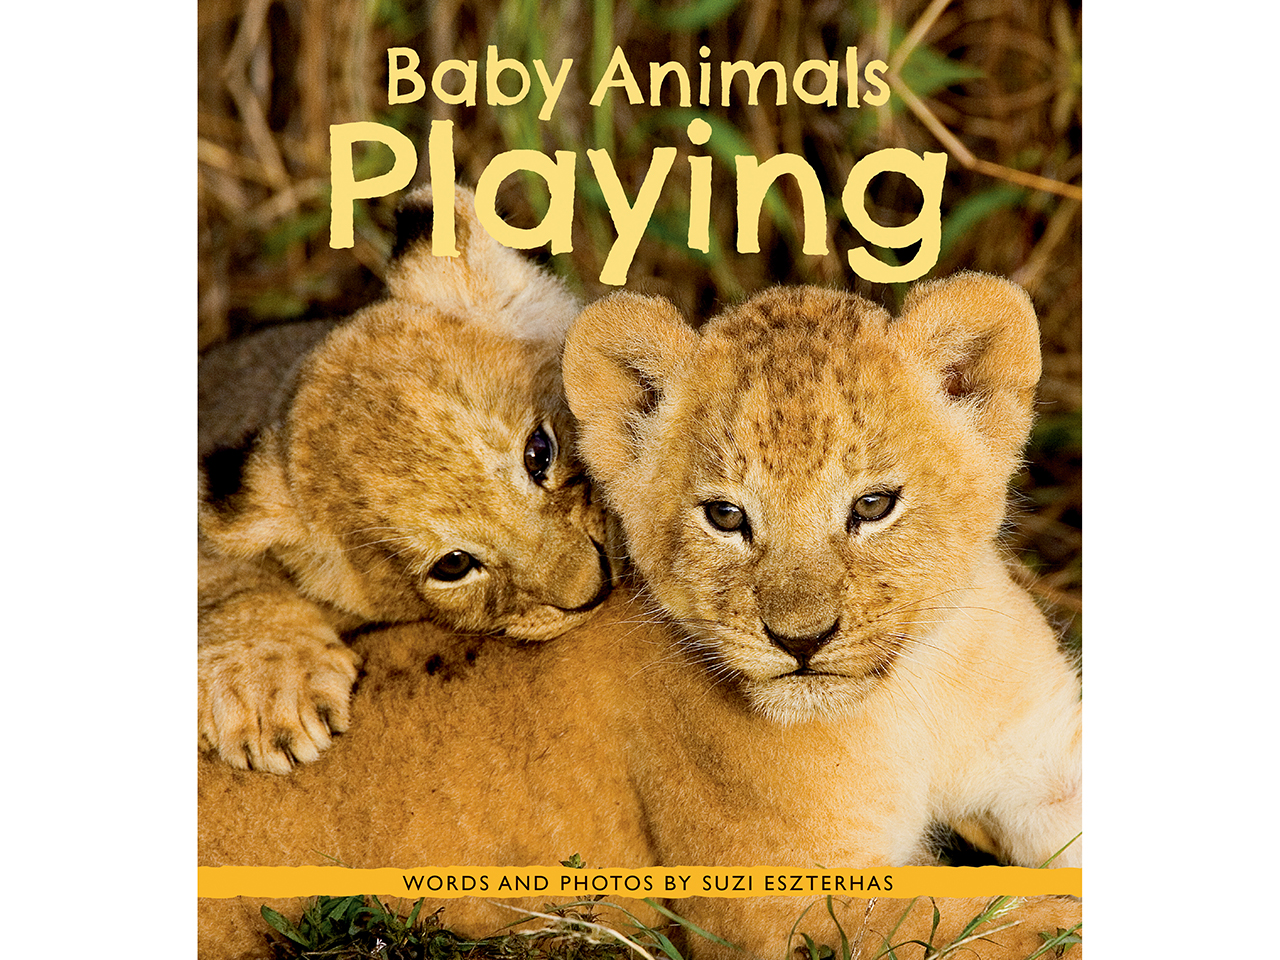 Baby Animals Playing book cover